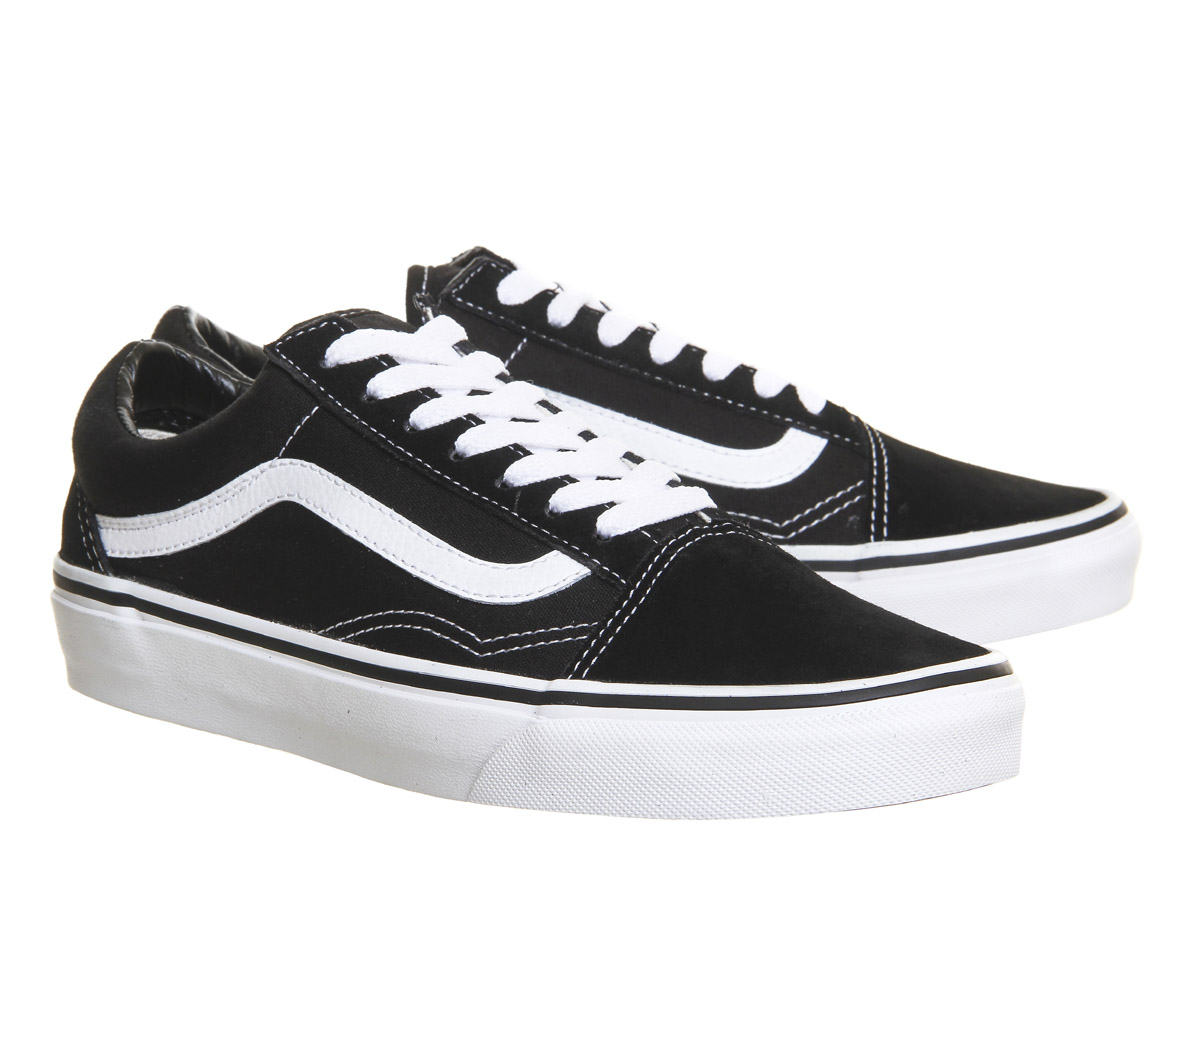 d00ae3bf00815d Sentinel Mens Vans Old Skool Trainers Black Trainers Shoes